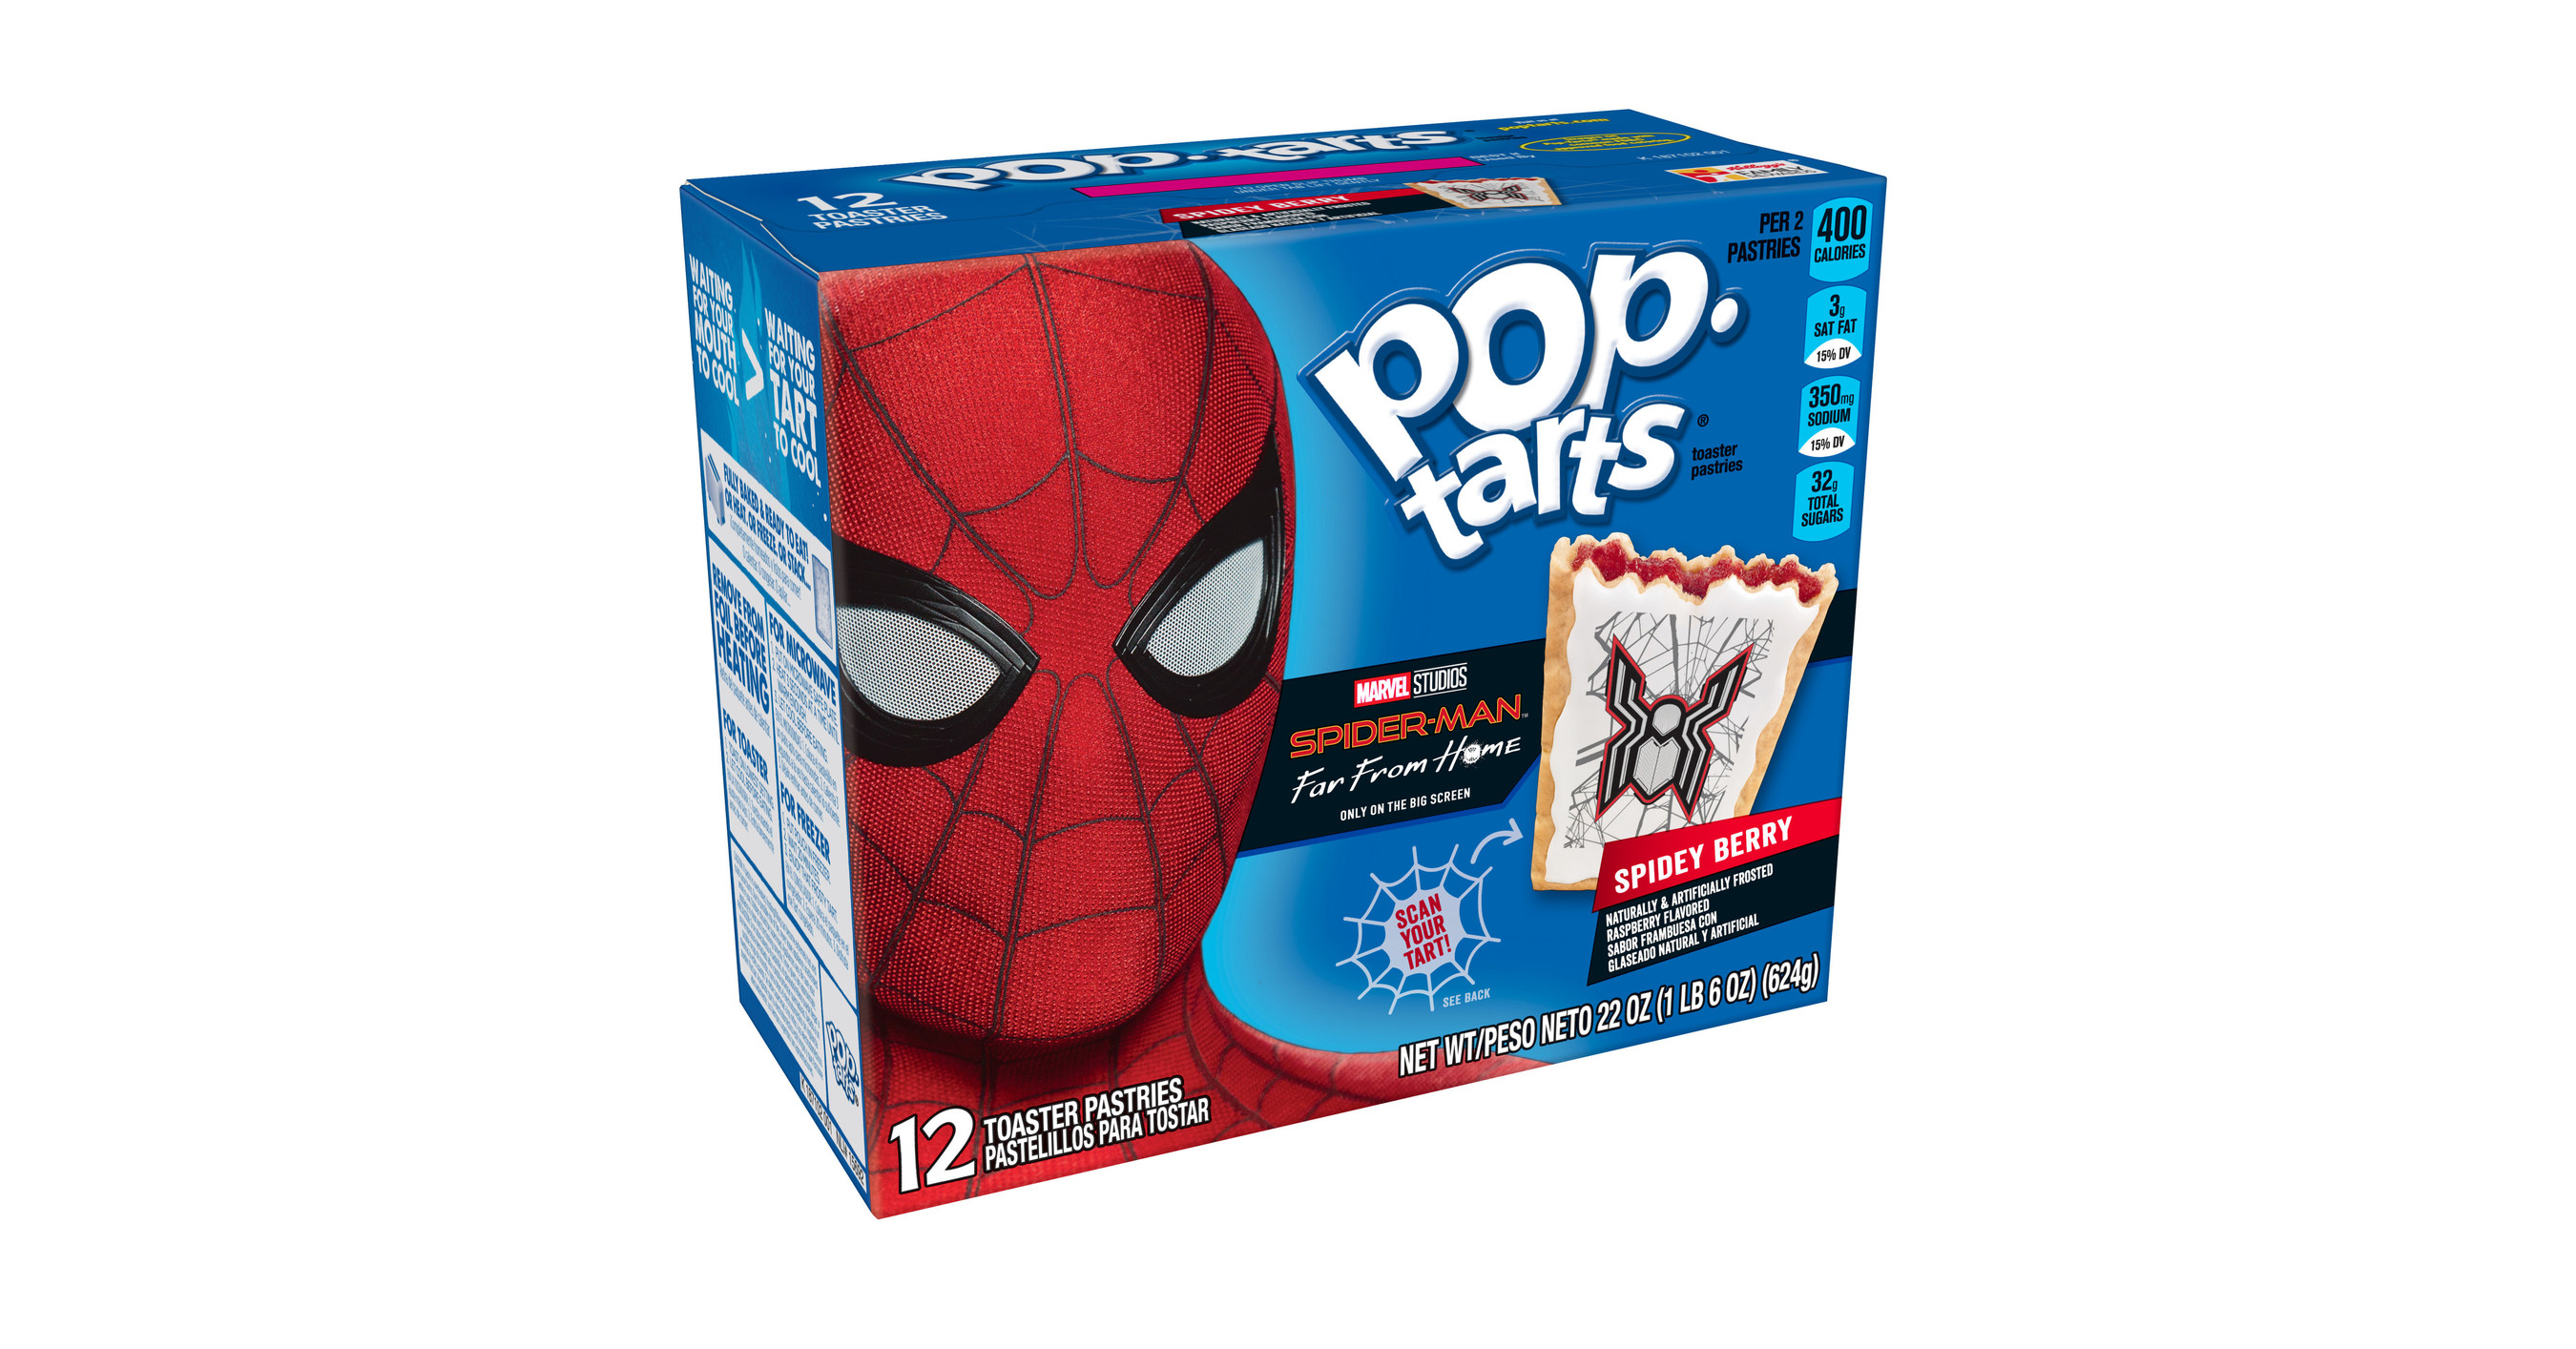 Kellogg's Slings Into Action With Spider-Man™: Far From Home